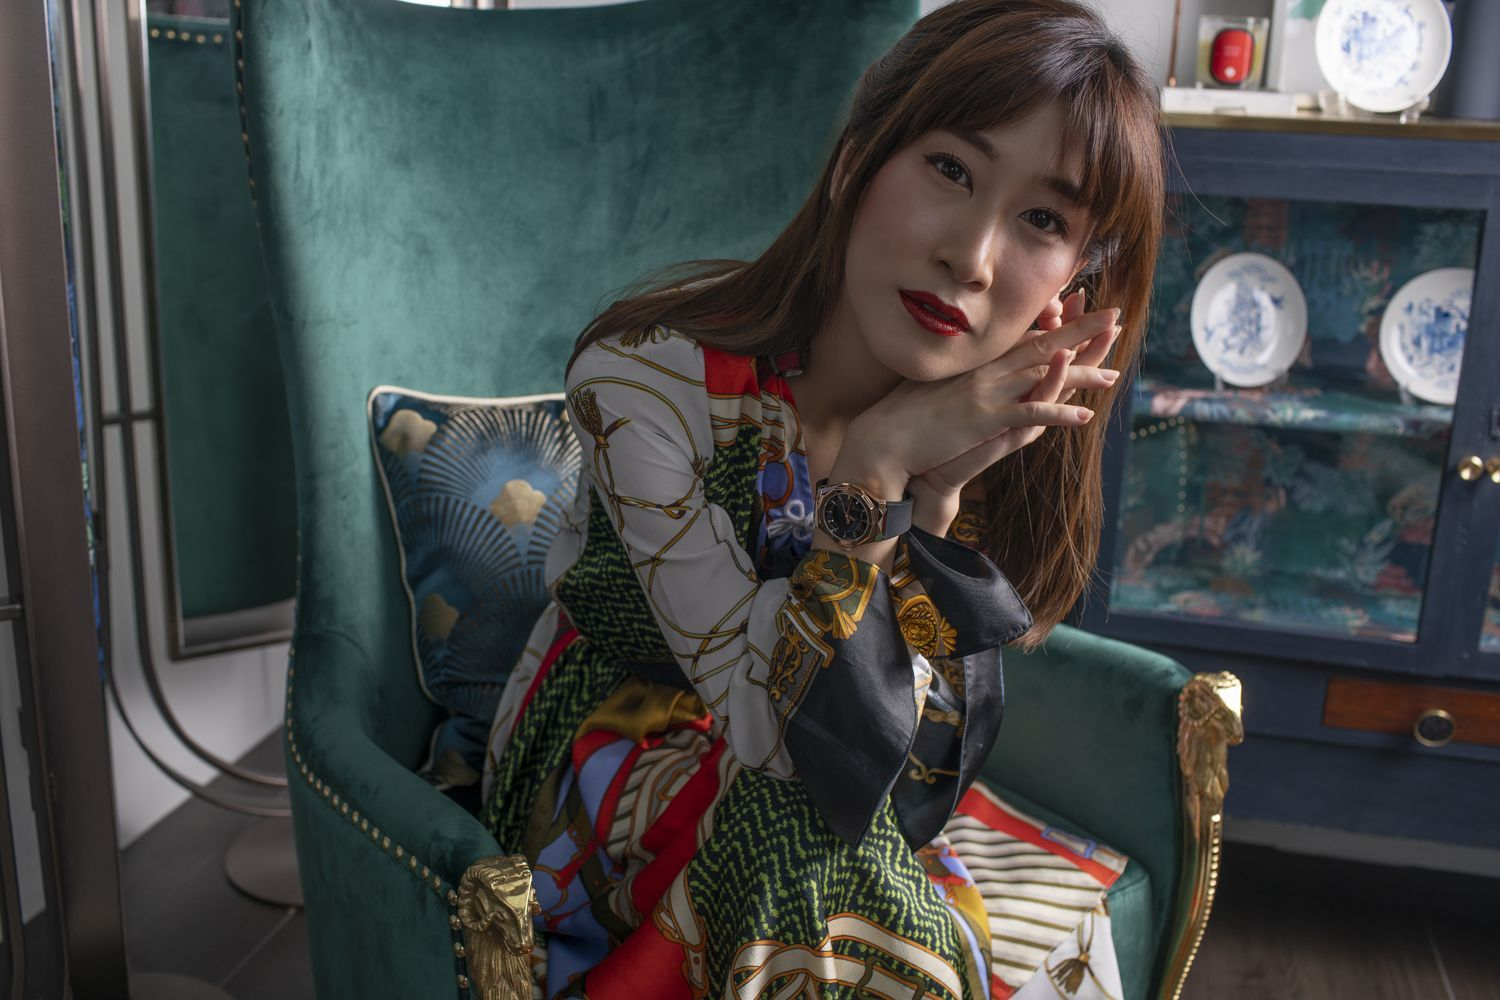 Pomme Chan Wears Hublot And Reflects On The Creative Process